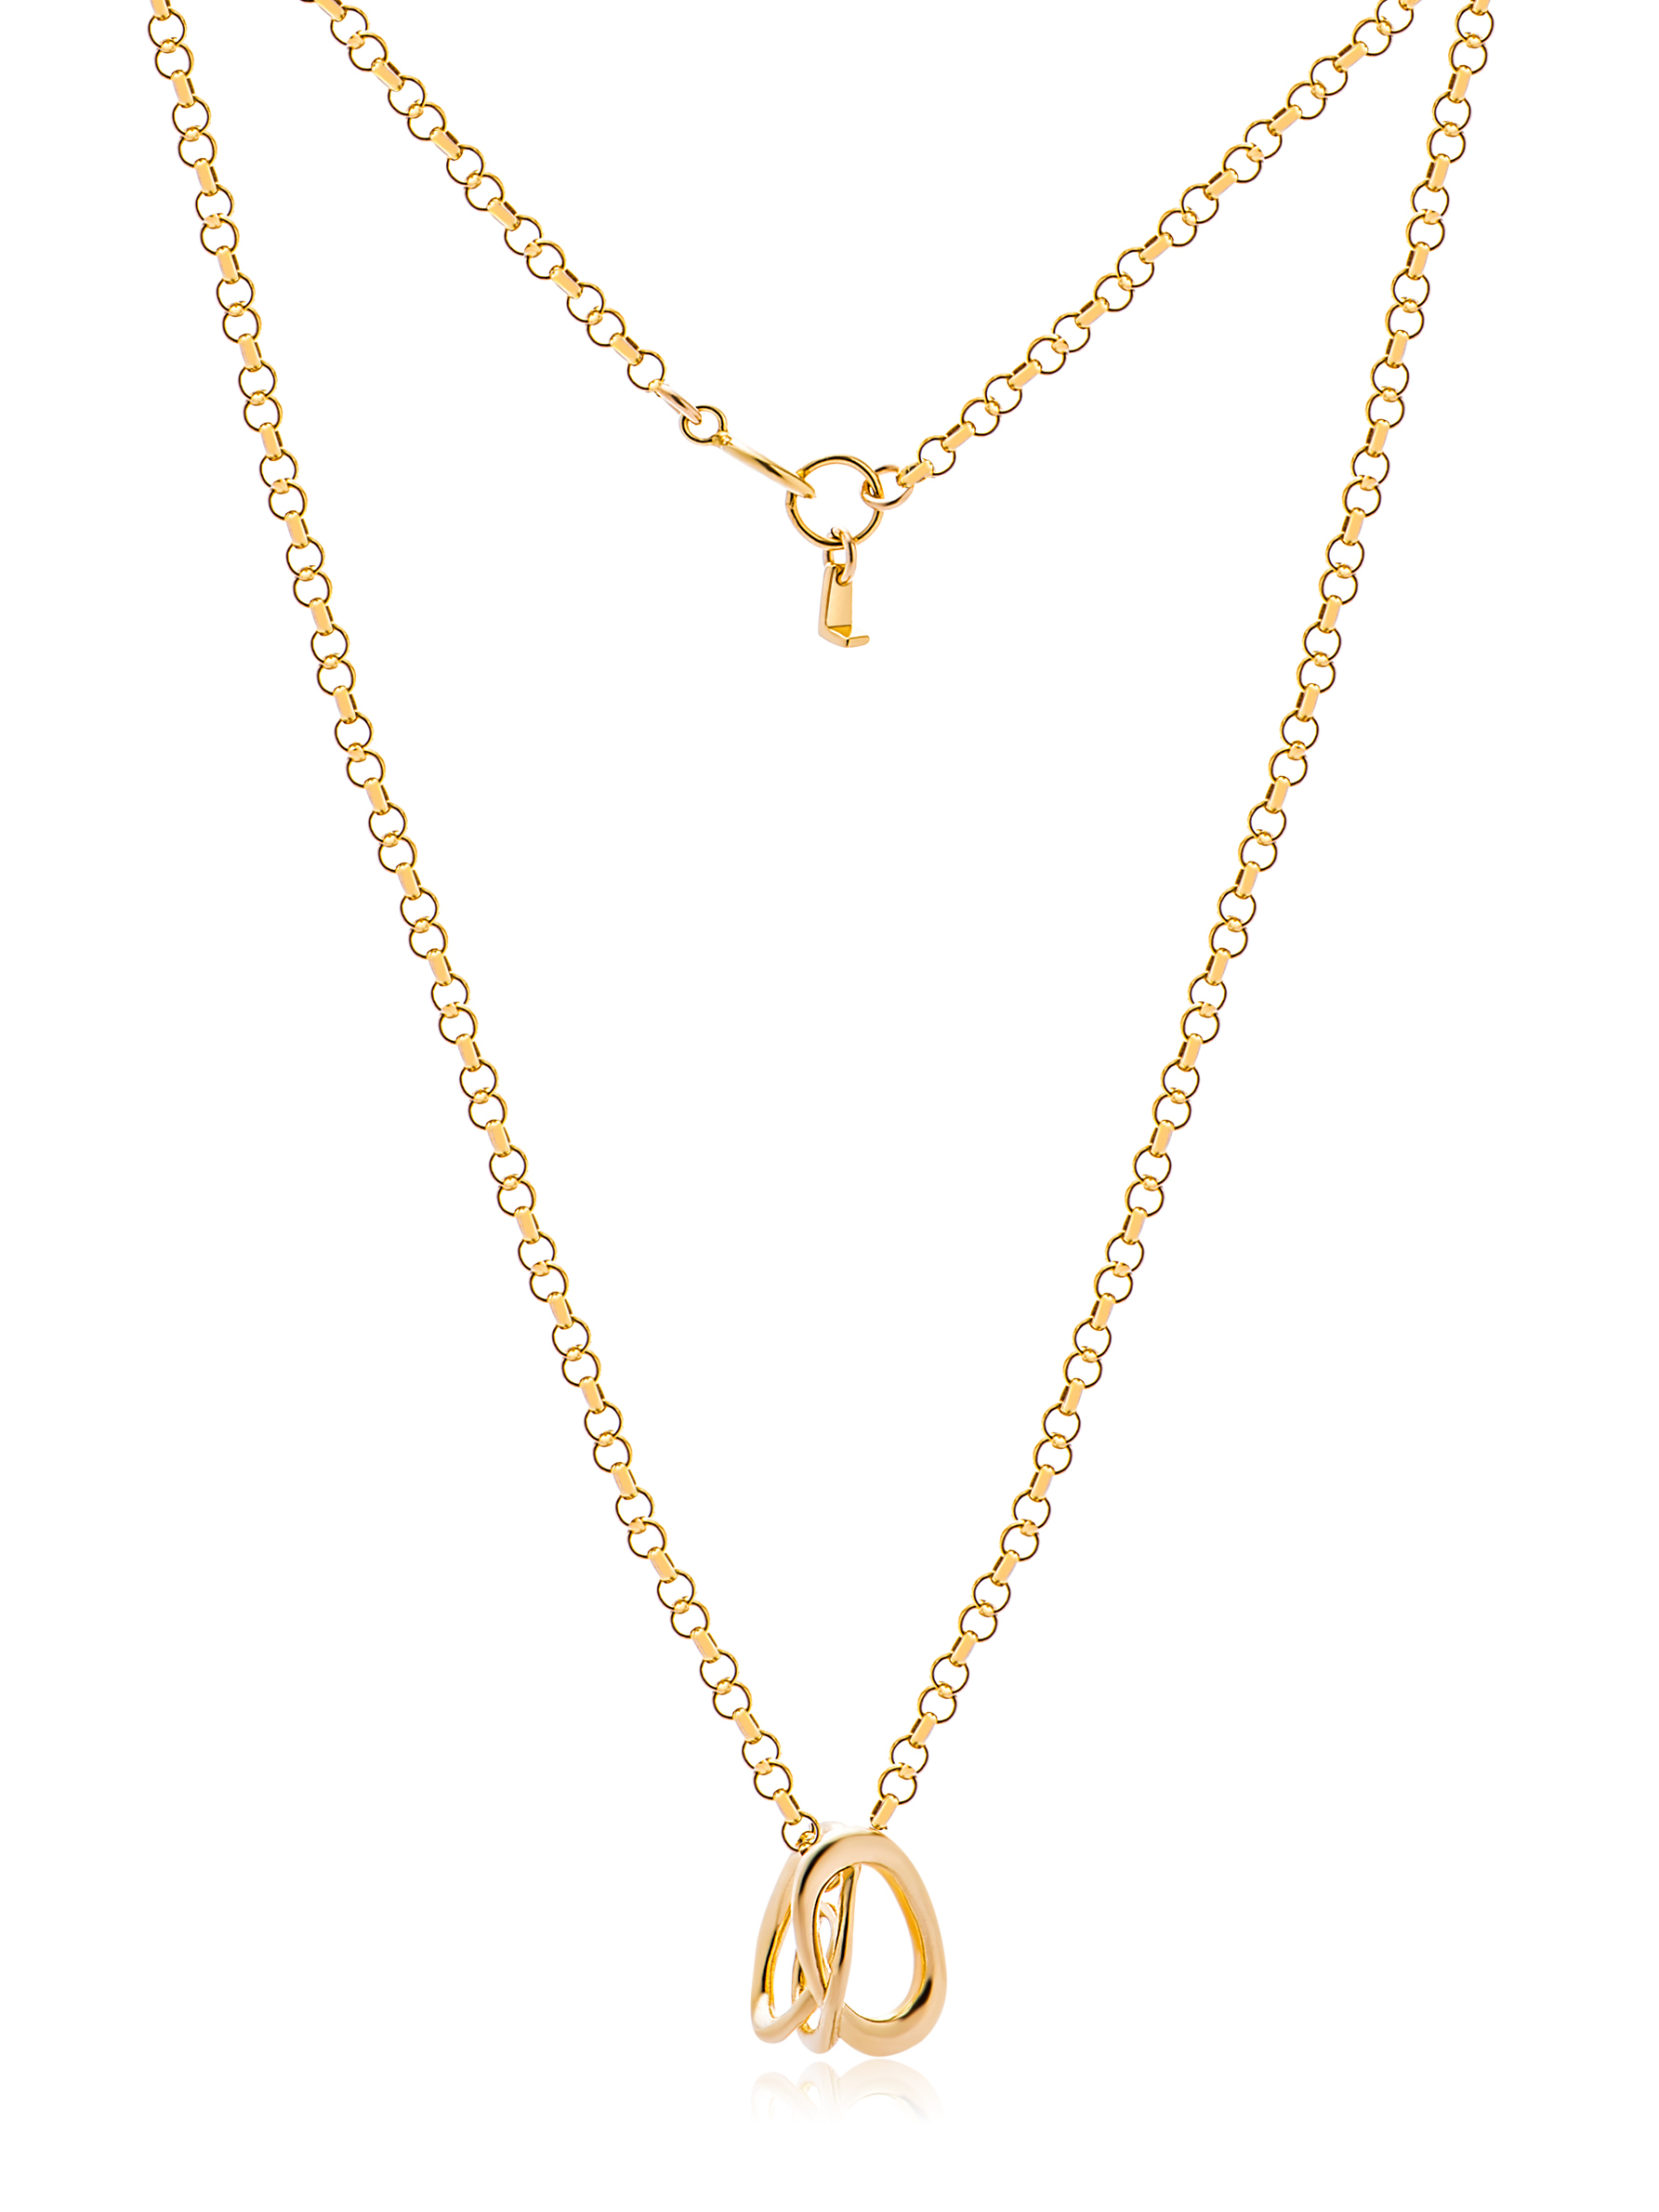 Tie A Knot Necklace.jpg